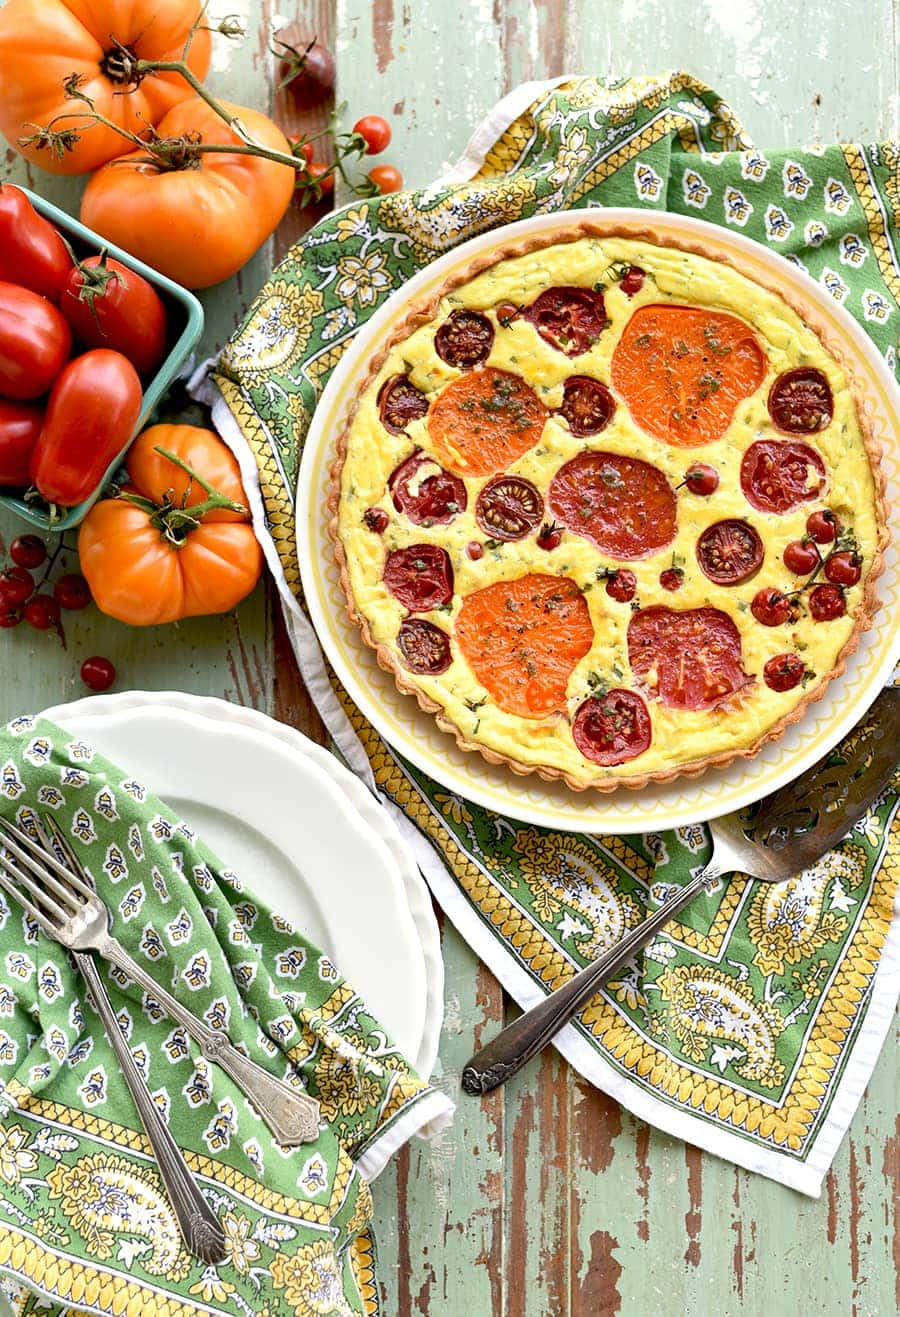 Heirloom Tomato Tart 1241 Web - Heirloom Tomato Tart